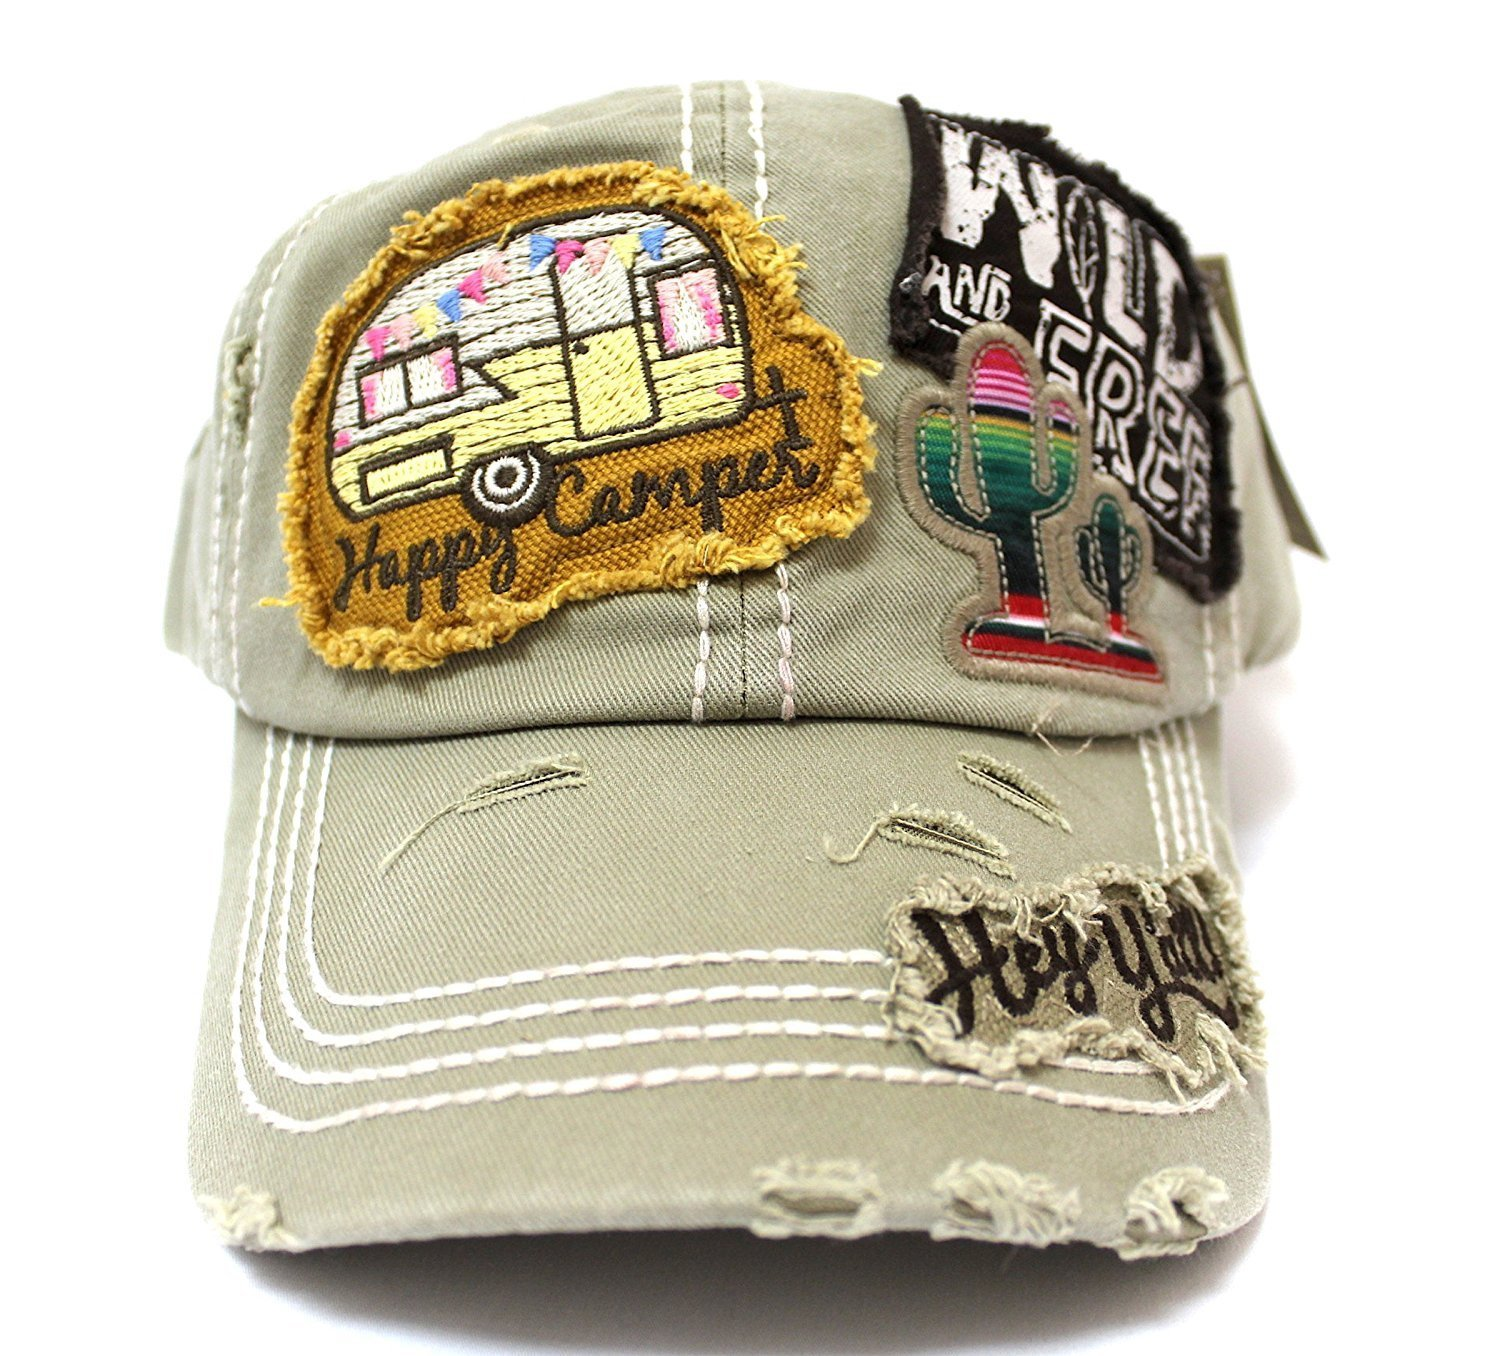 """Khaki """"Y'ALL, HAPPY CAMPER, WILD FREE"""" Multi-Patch Embroidered Adjustable Cap"""